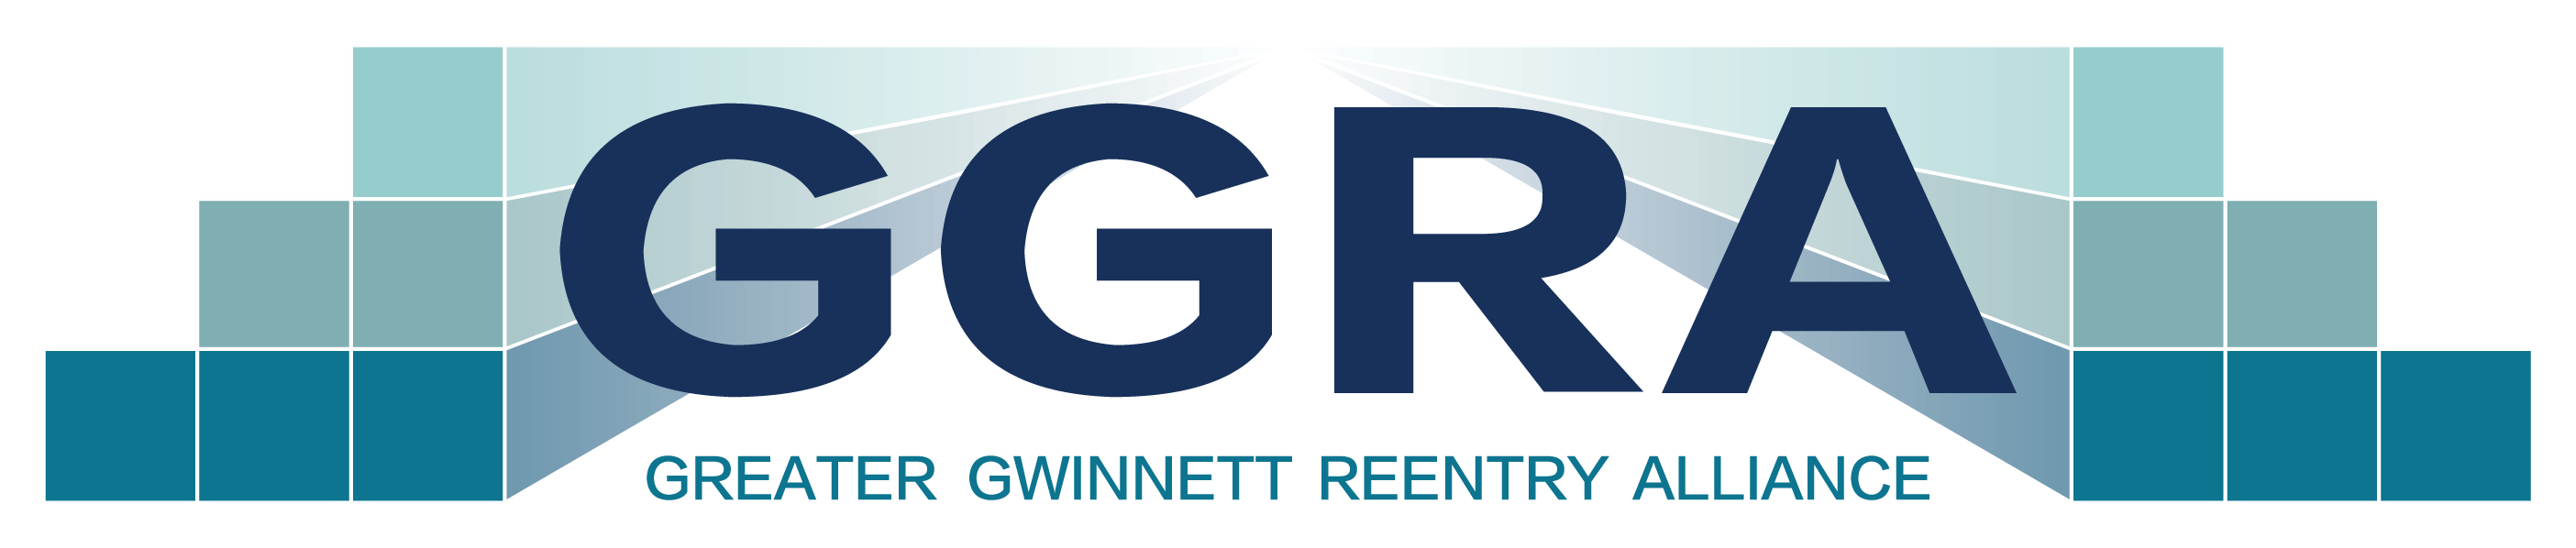 Greater Gwinnett Reentry Alliance